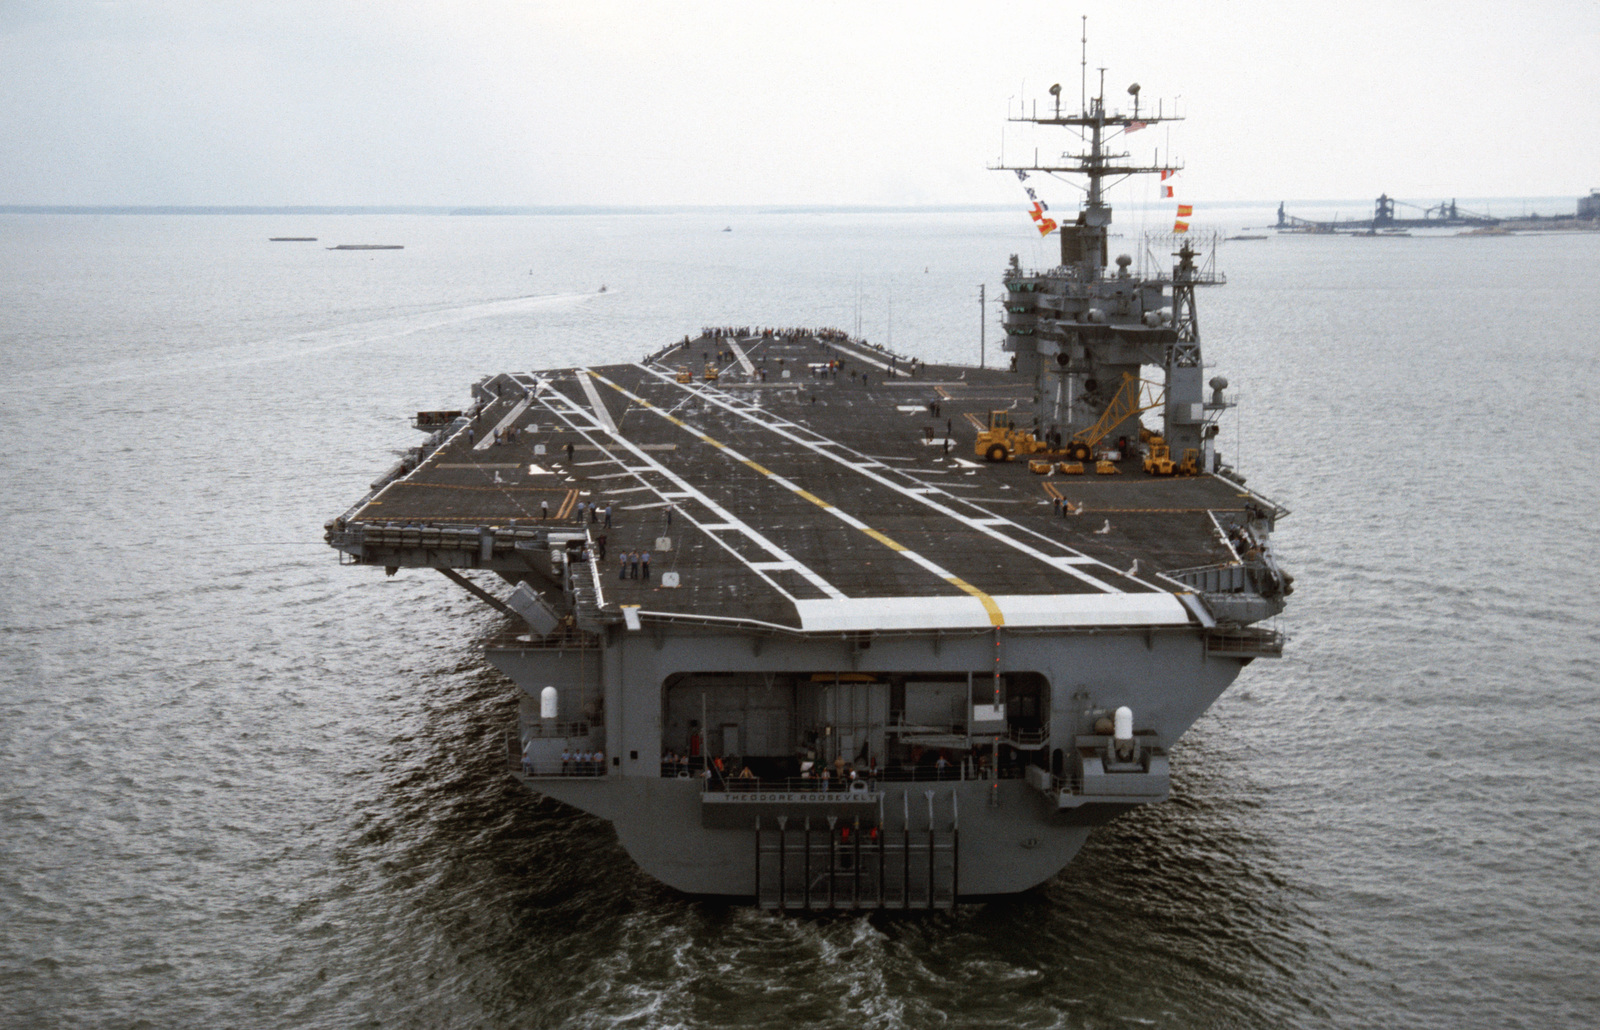 A stern view of the nuclear-powered aircraft carrier USS THEODORE ROOSEVELT (CVN 71) underway